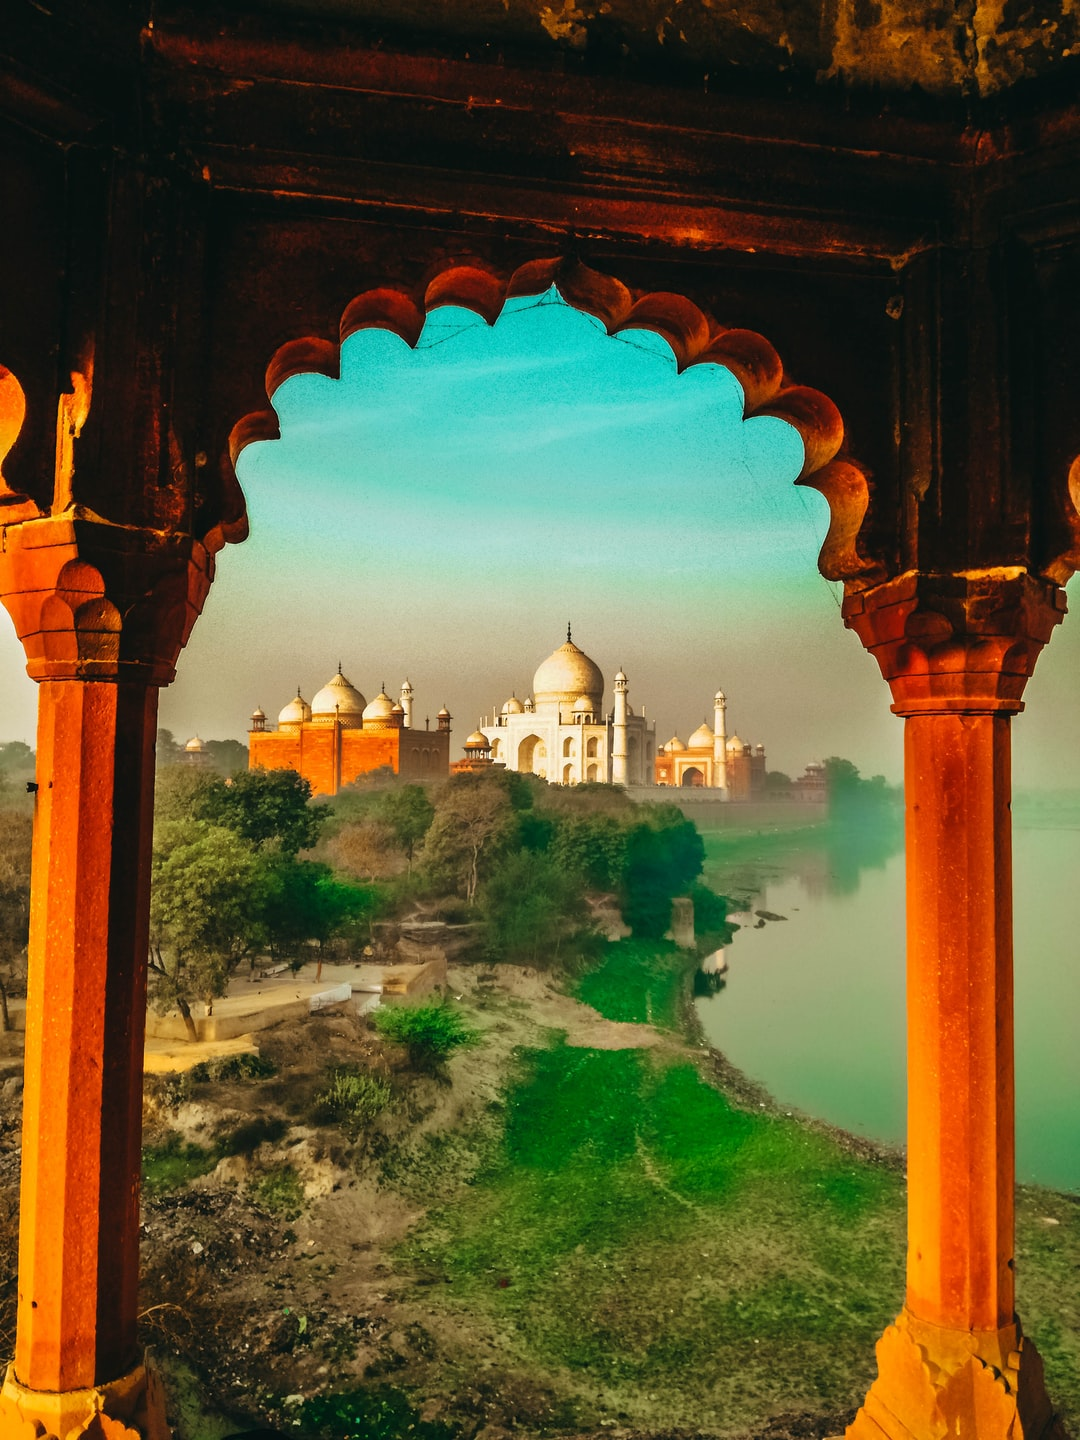 This picture was taken from a hidden place near Taj Mahal, that just the locals know, and have an amazing view and different from all the pictures you will find on the internet.